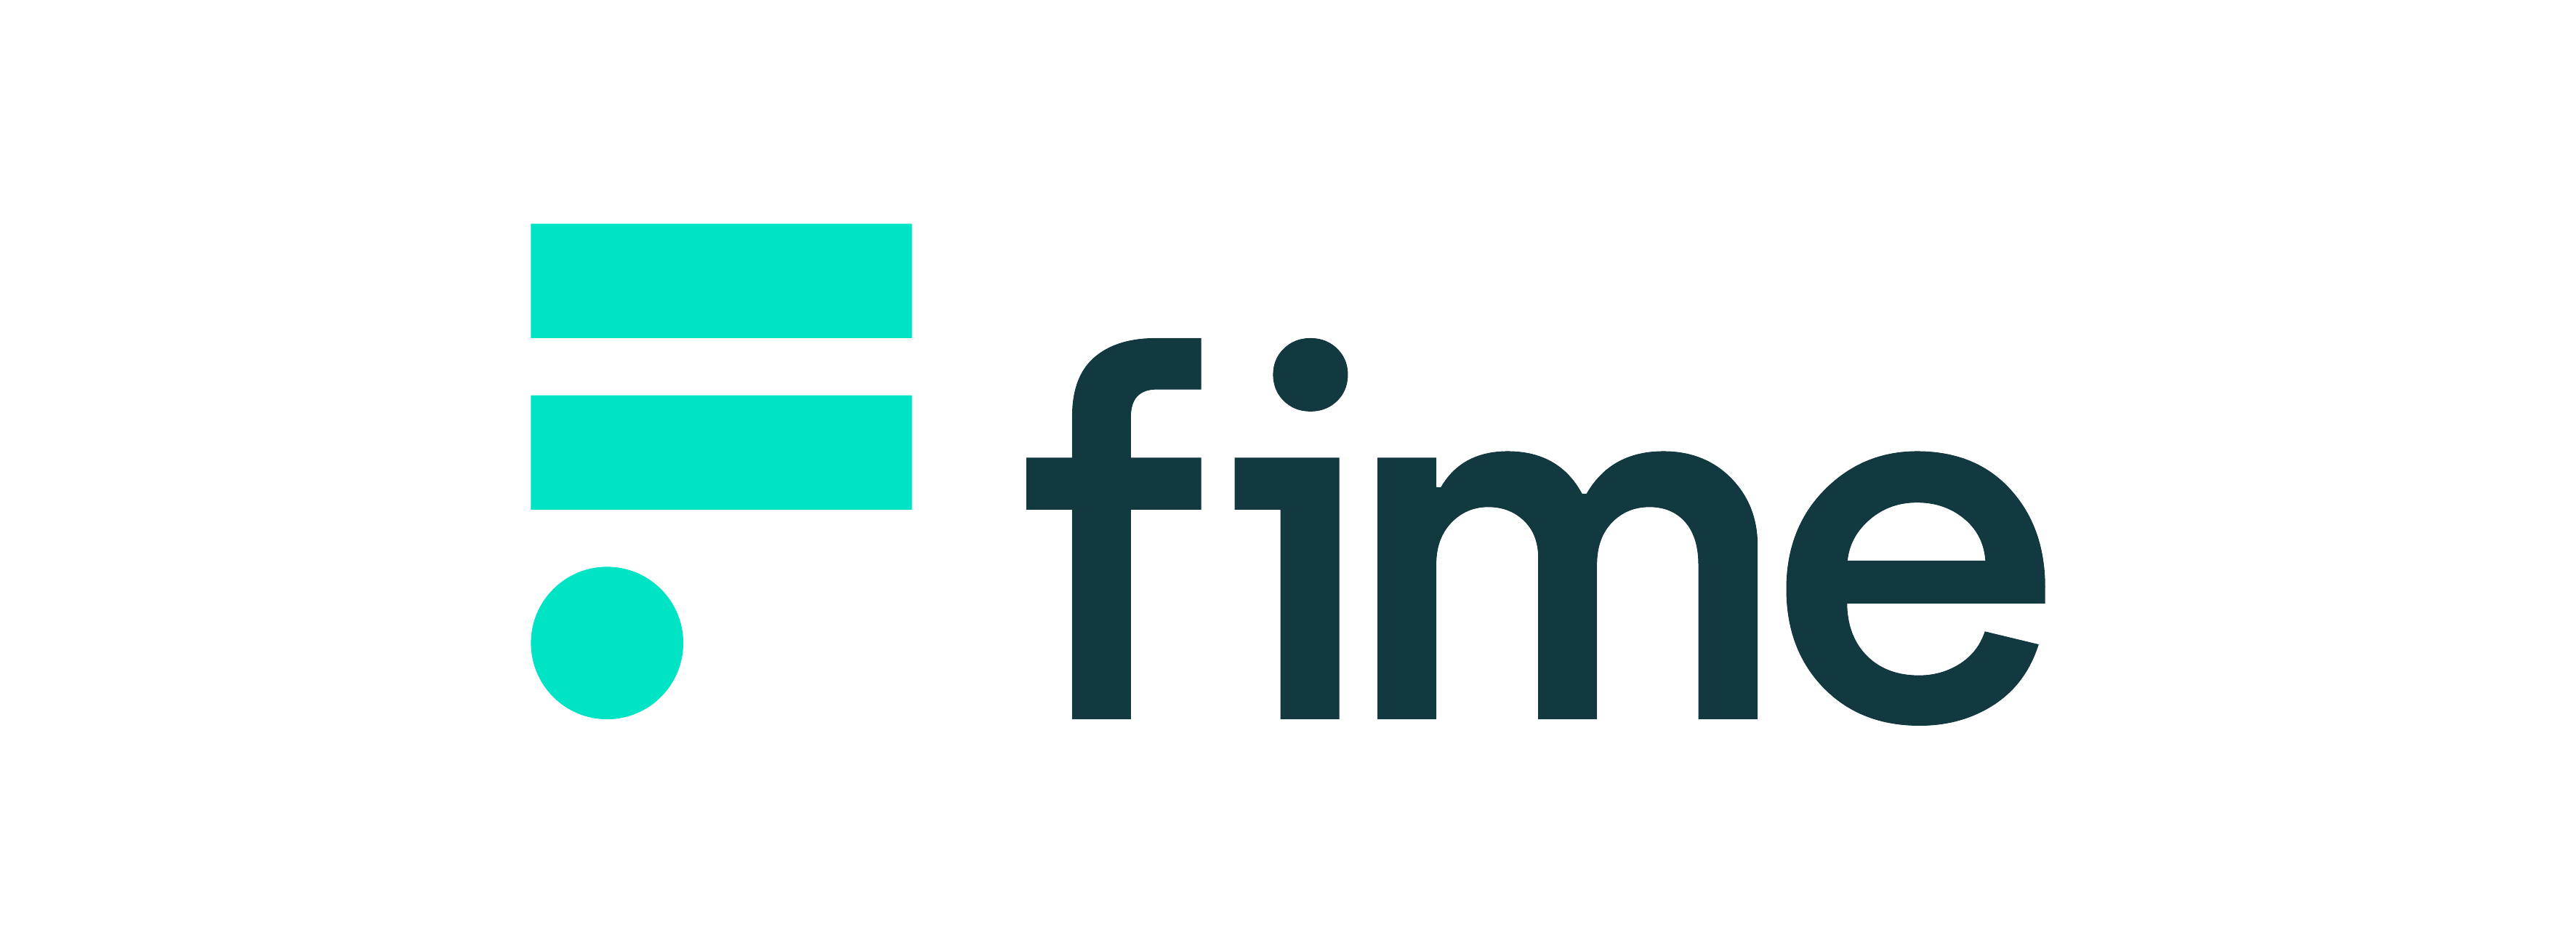 Government of India and Fime Move Closer to National Mobility Scheme Roll-Out